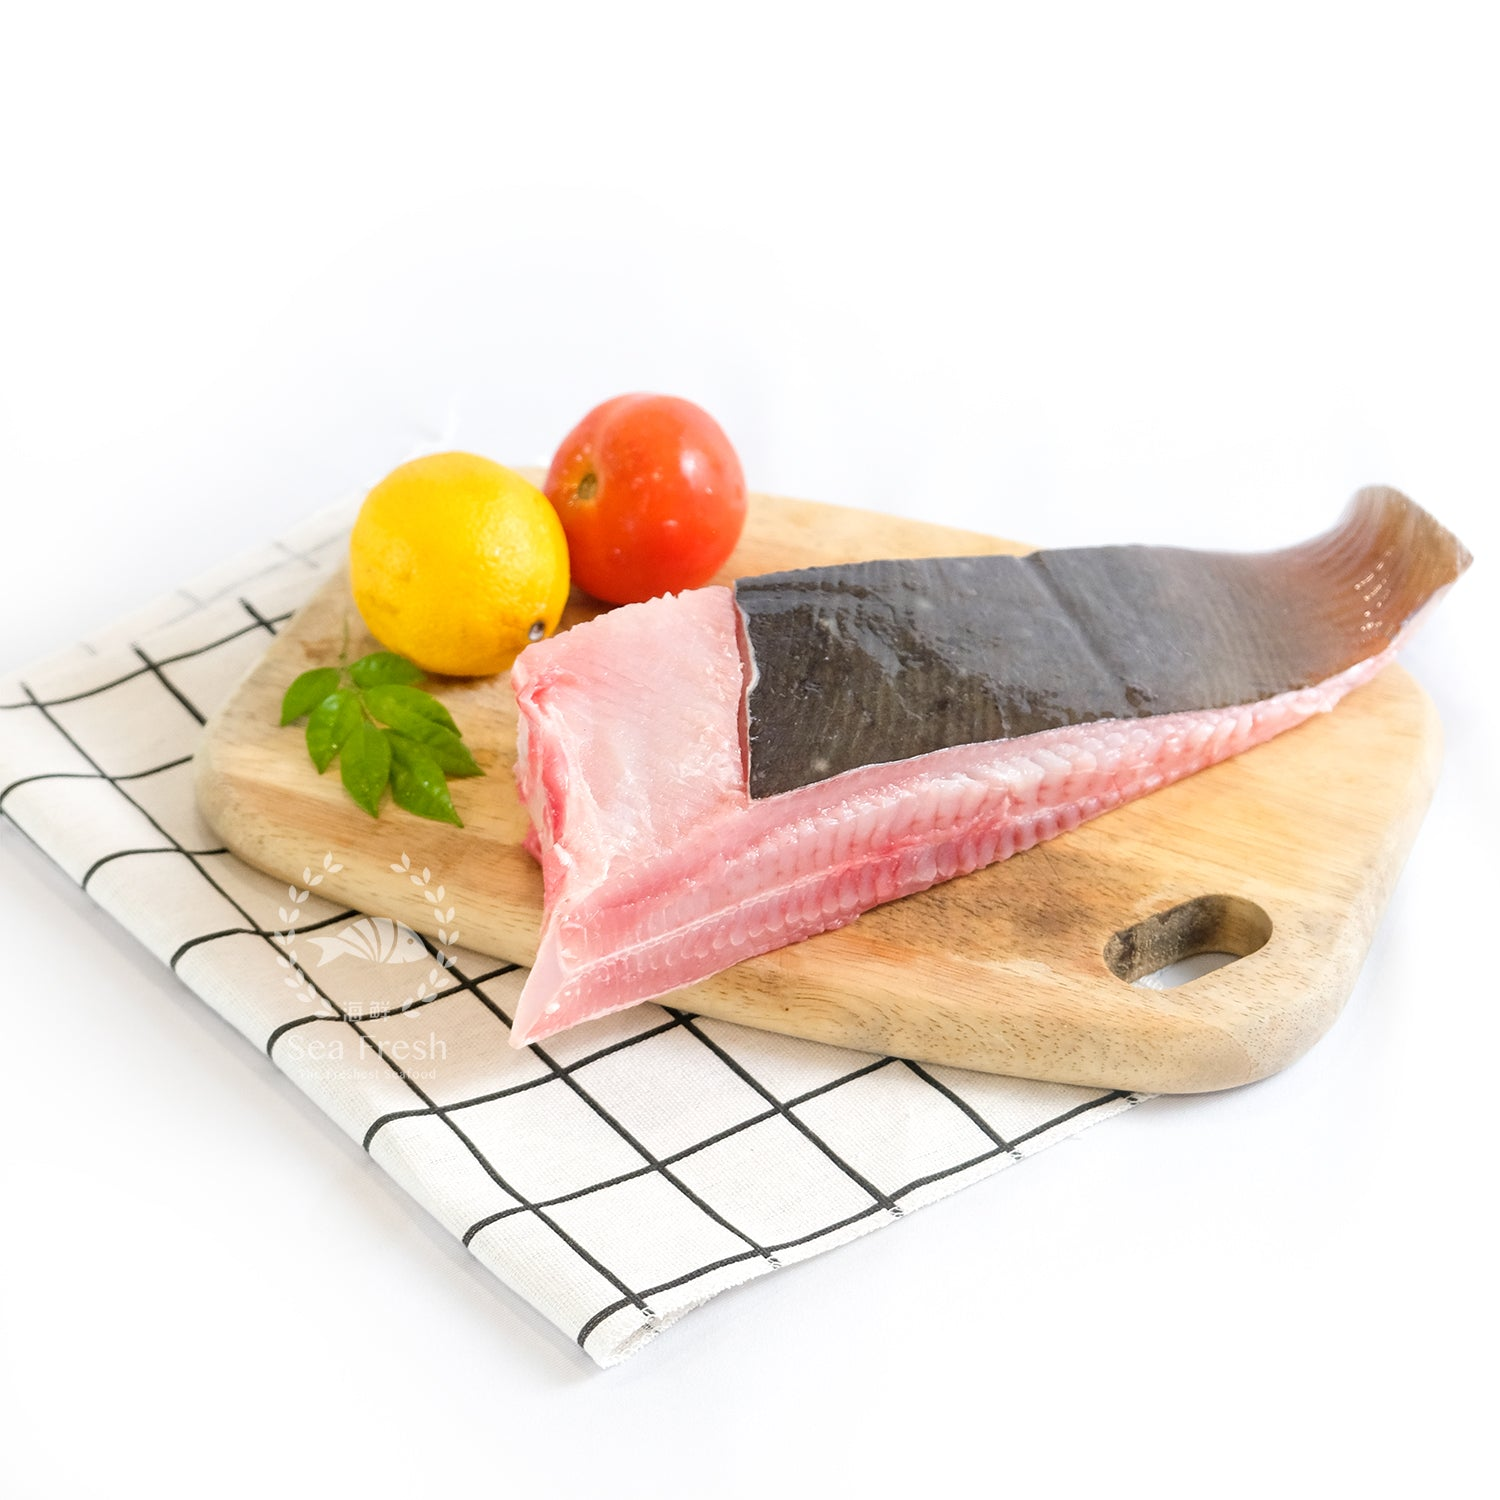 Stingray Steak / IKan Pari / 方鱼肉扒